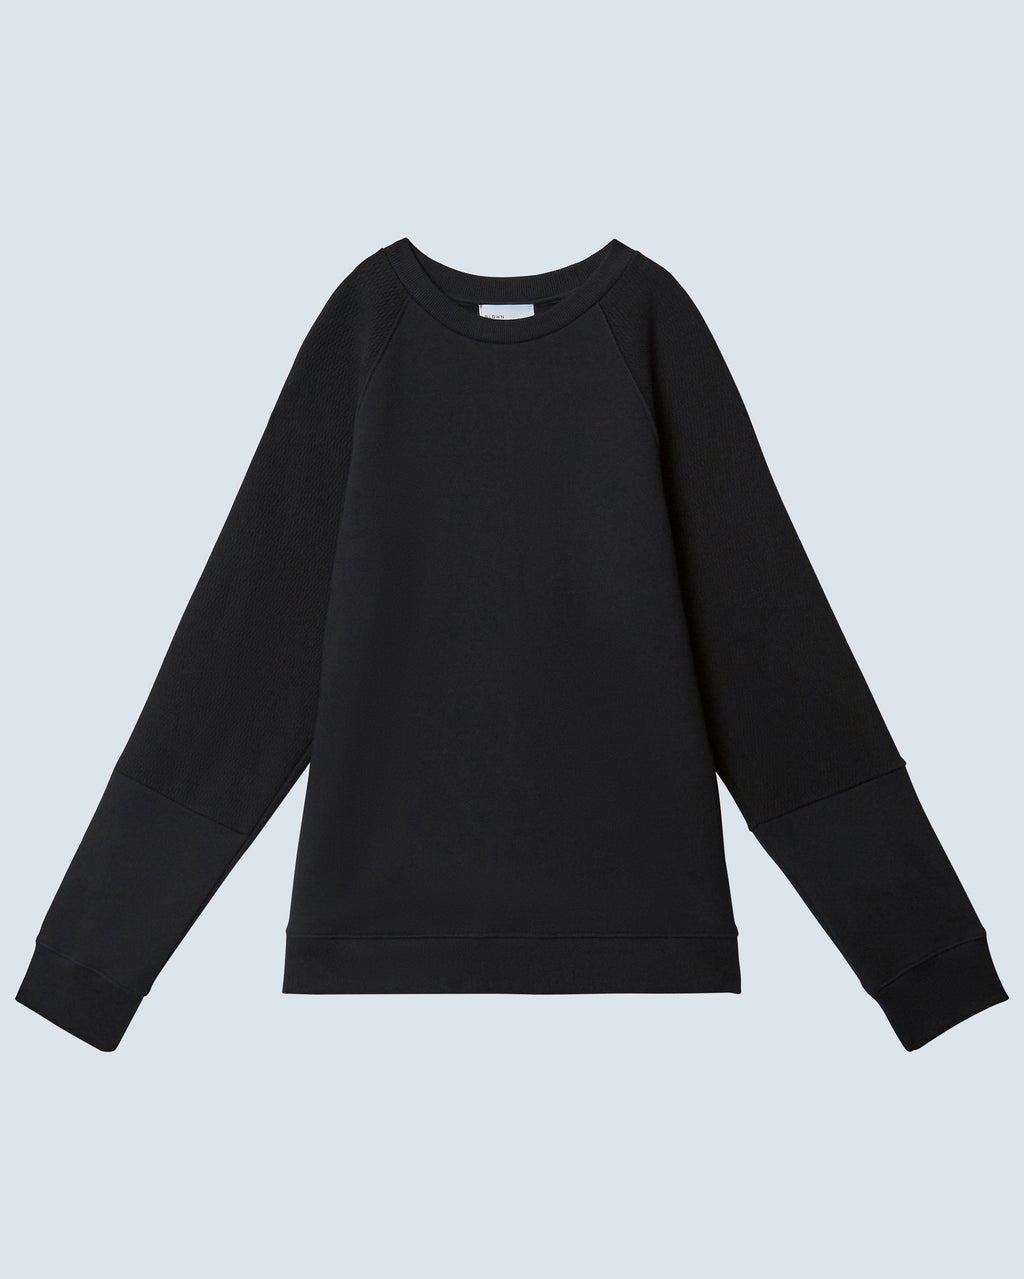 The Harlot Sweatshirt in Black